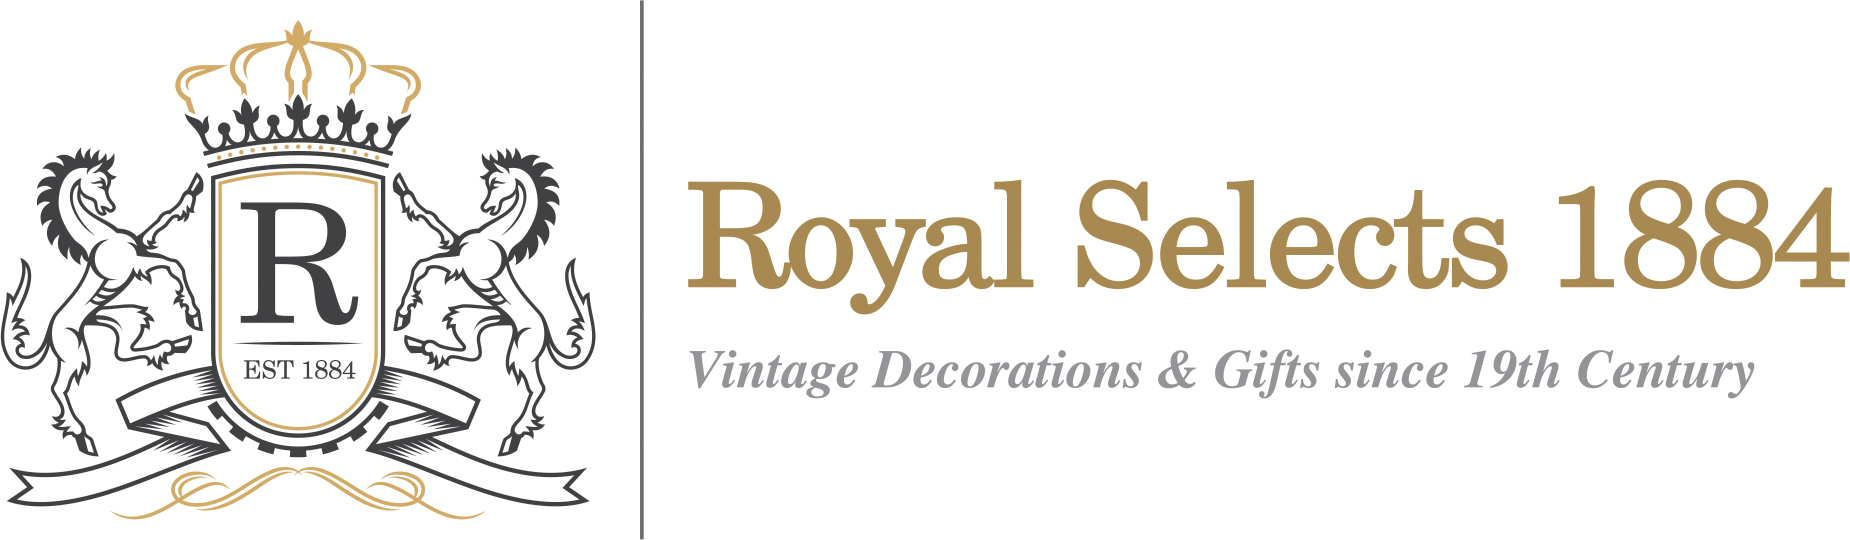 Royal Selects 1884 | Vintage Decoration for Home, Restarant & Retail Shop